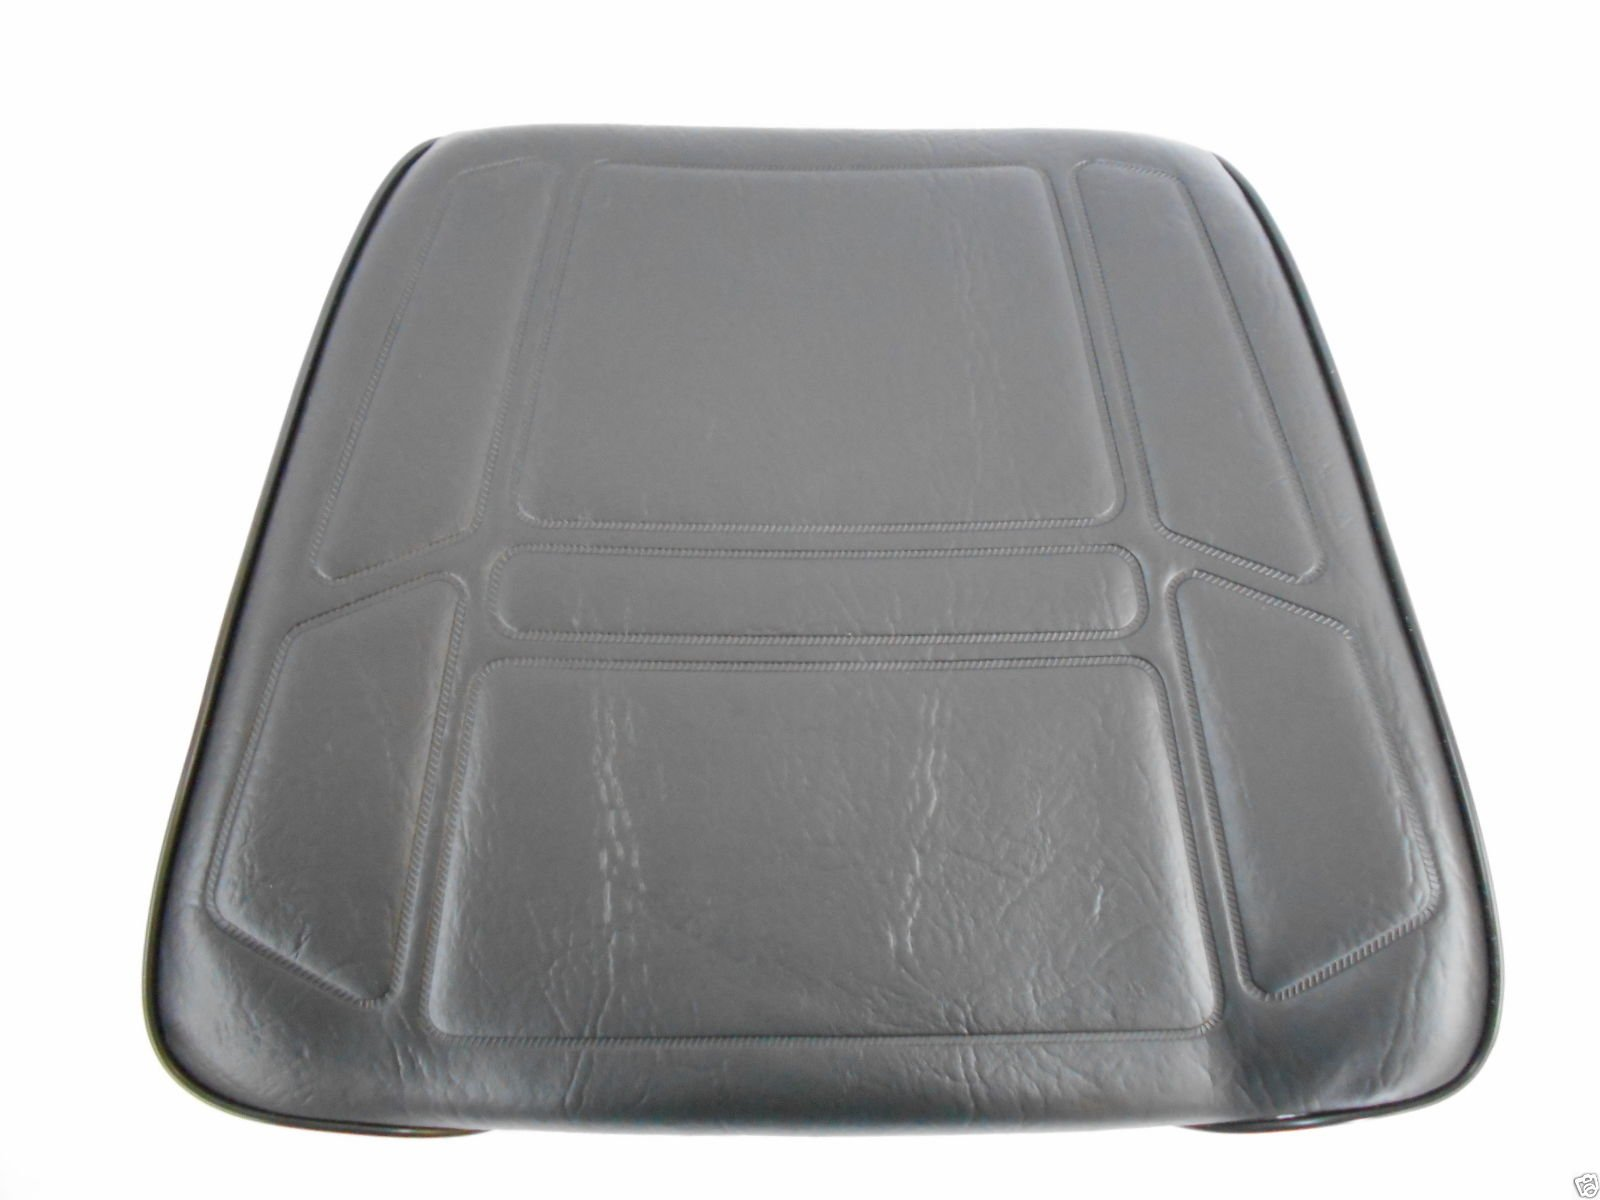 Seats, Inc KUBOTA ZD21,ZD25,ZD28,ZG20,ZG23,SEAT Replacement Cushion Set, Thicker Bottom #ZC by Seats, Inc